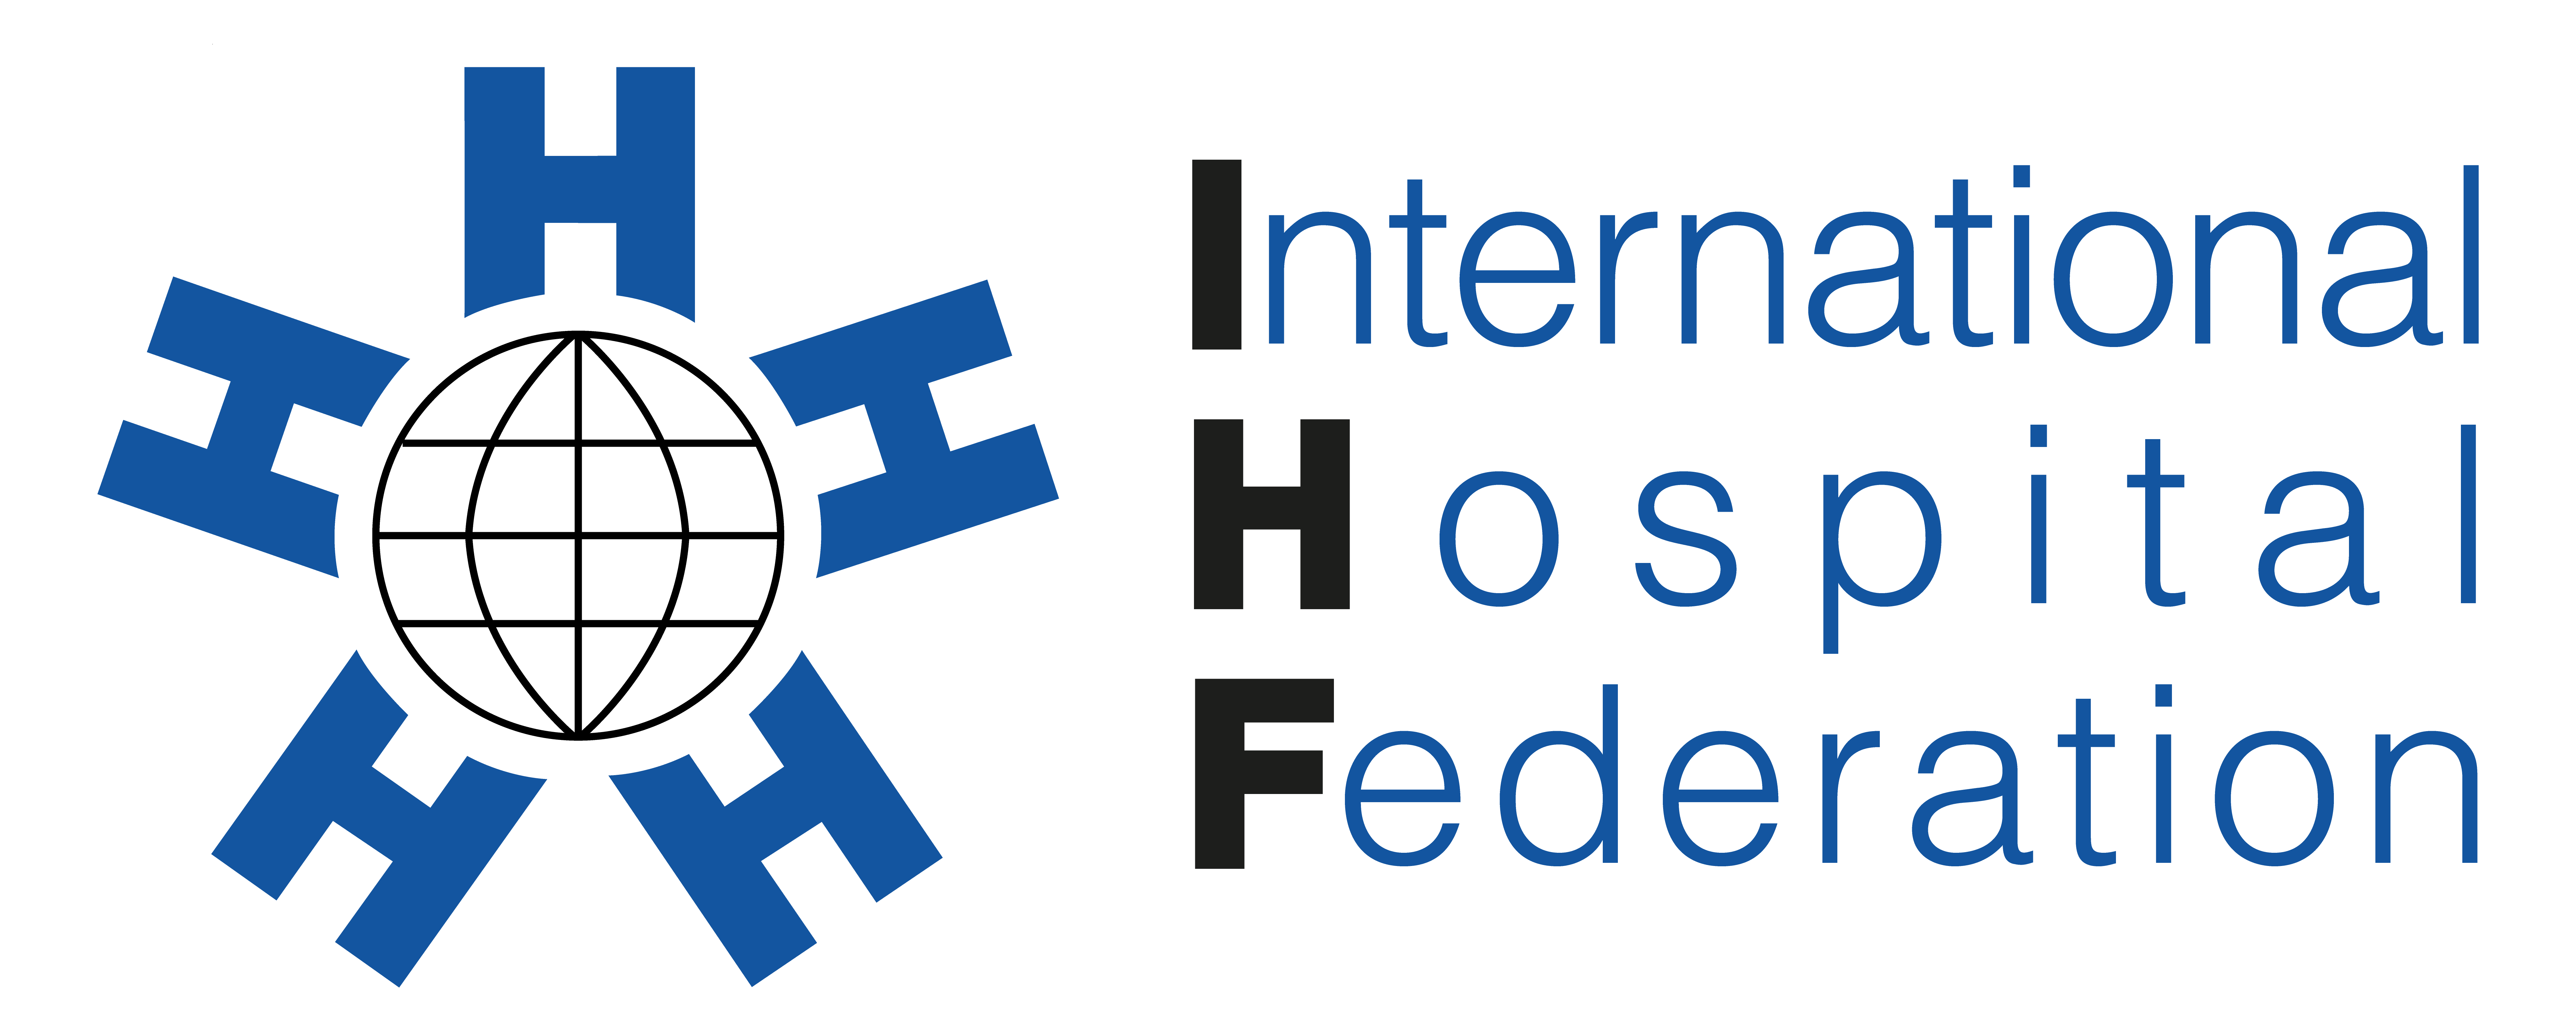 IHF-Logo-1-S.png